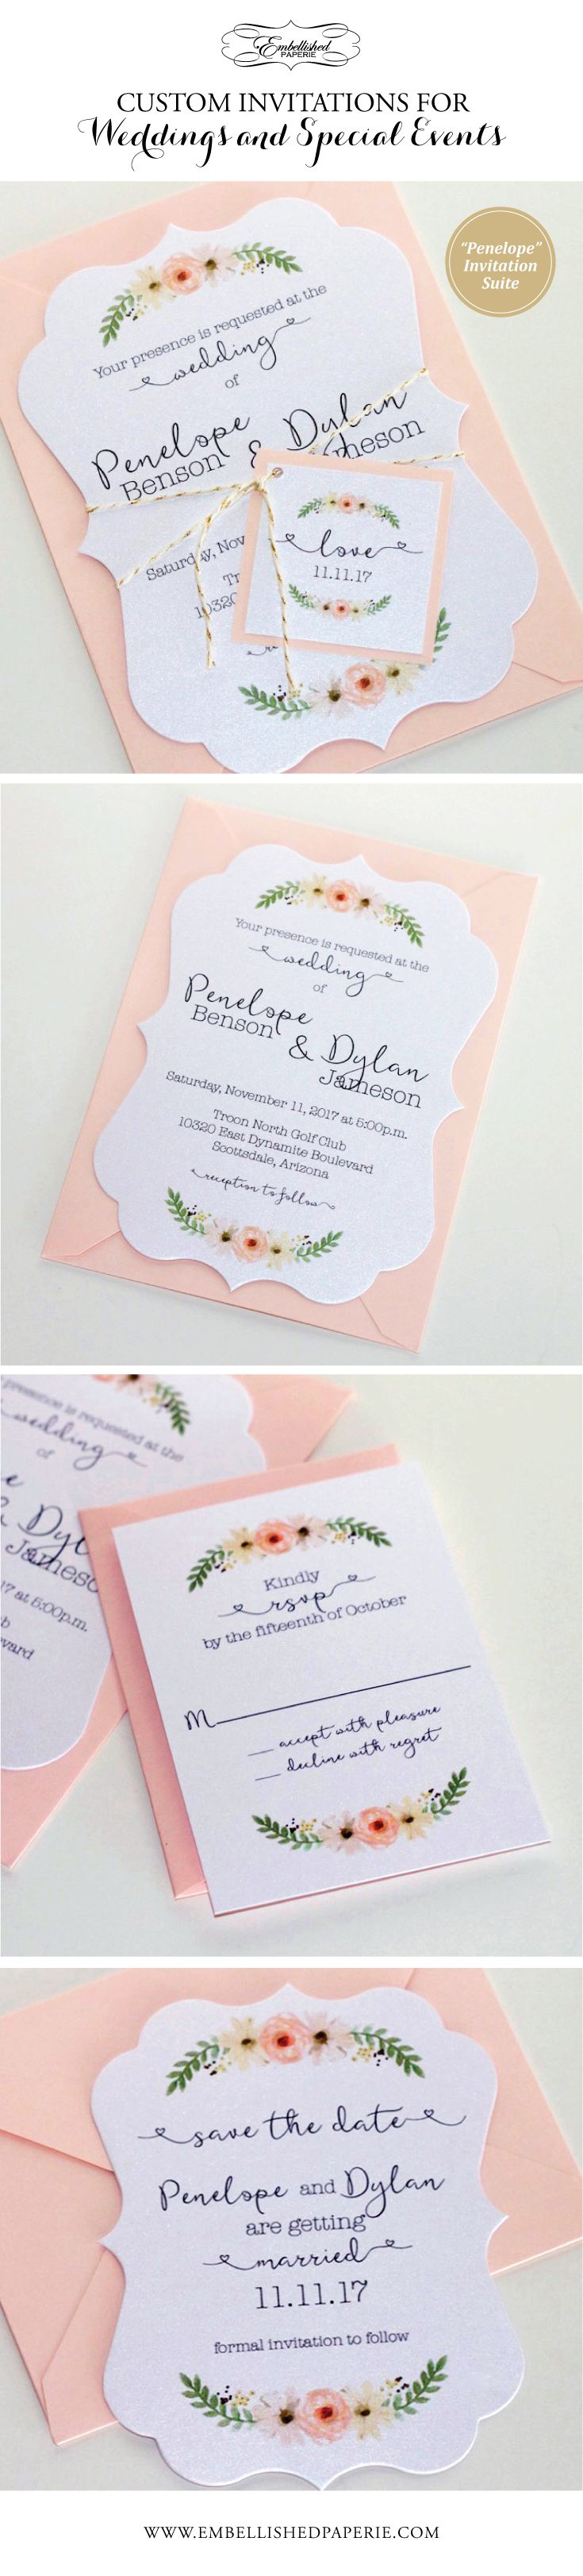 Custom Die Cut Wedding Invitation - Vintage Style Wedding Invitation - Water color flowers - Printed on White metallic card stock with Blush Pink envelopes.  Perfect Soft and Pretty Invitation for a Romantic Wedding.  www.embellishedpaperie.com